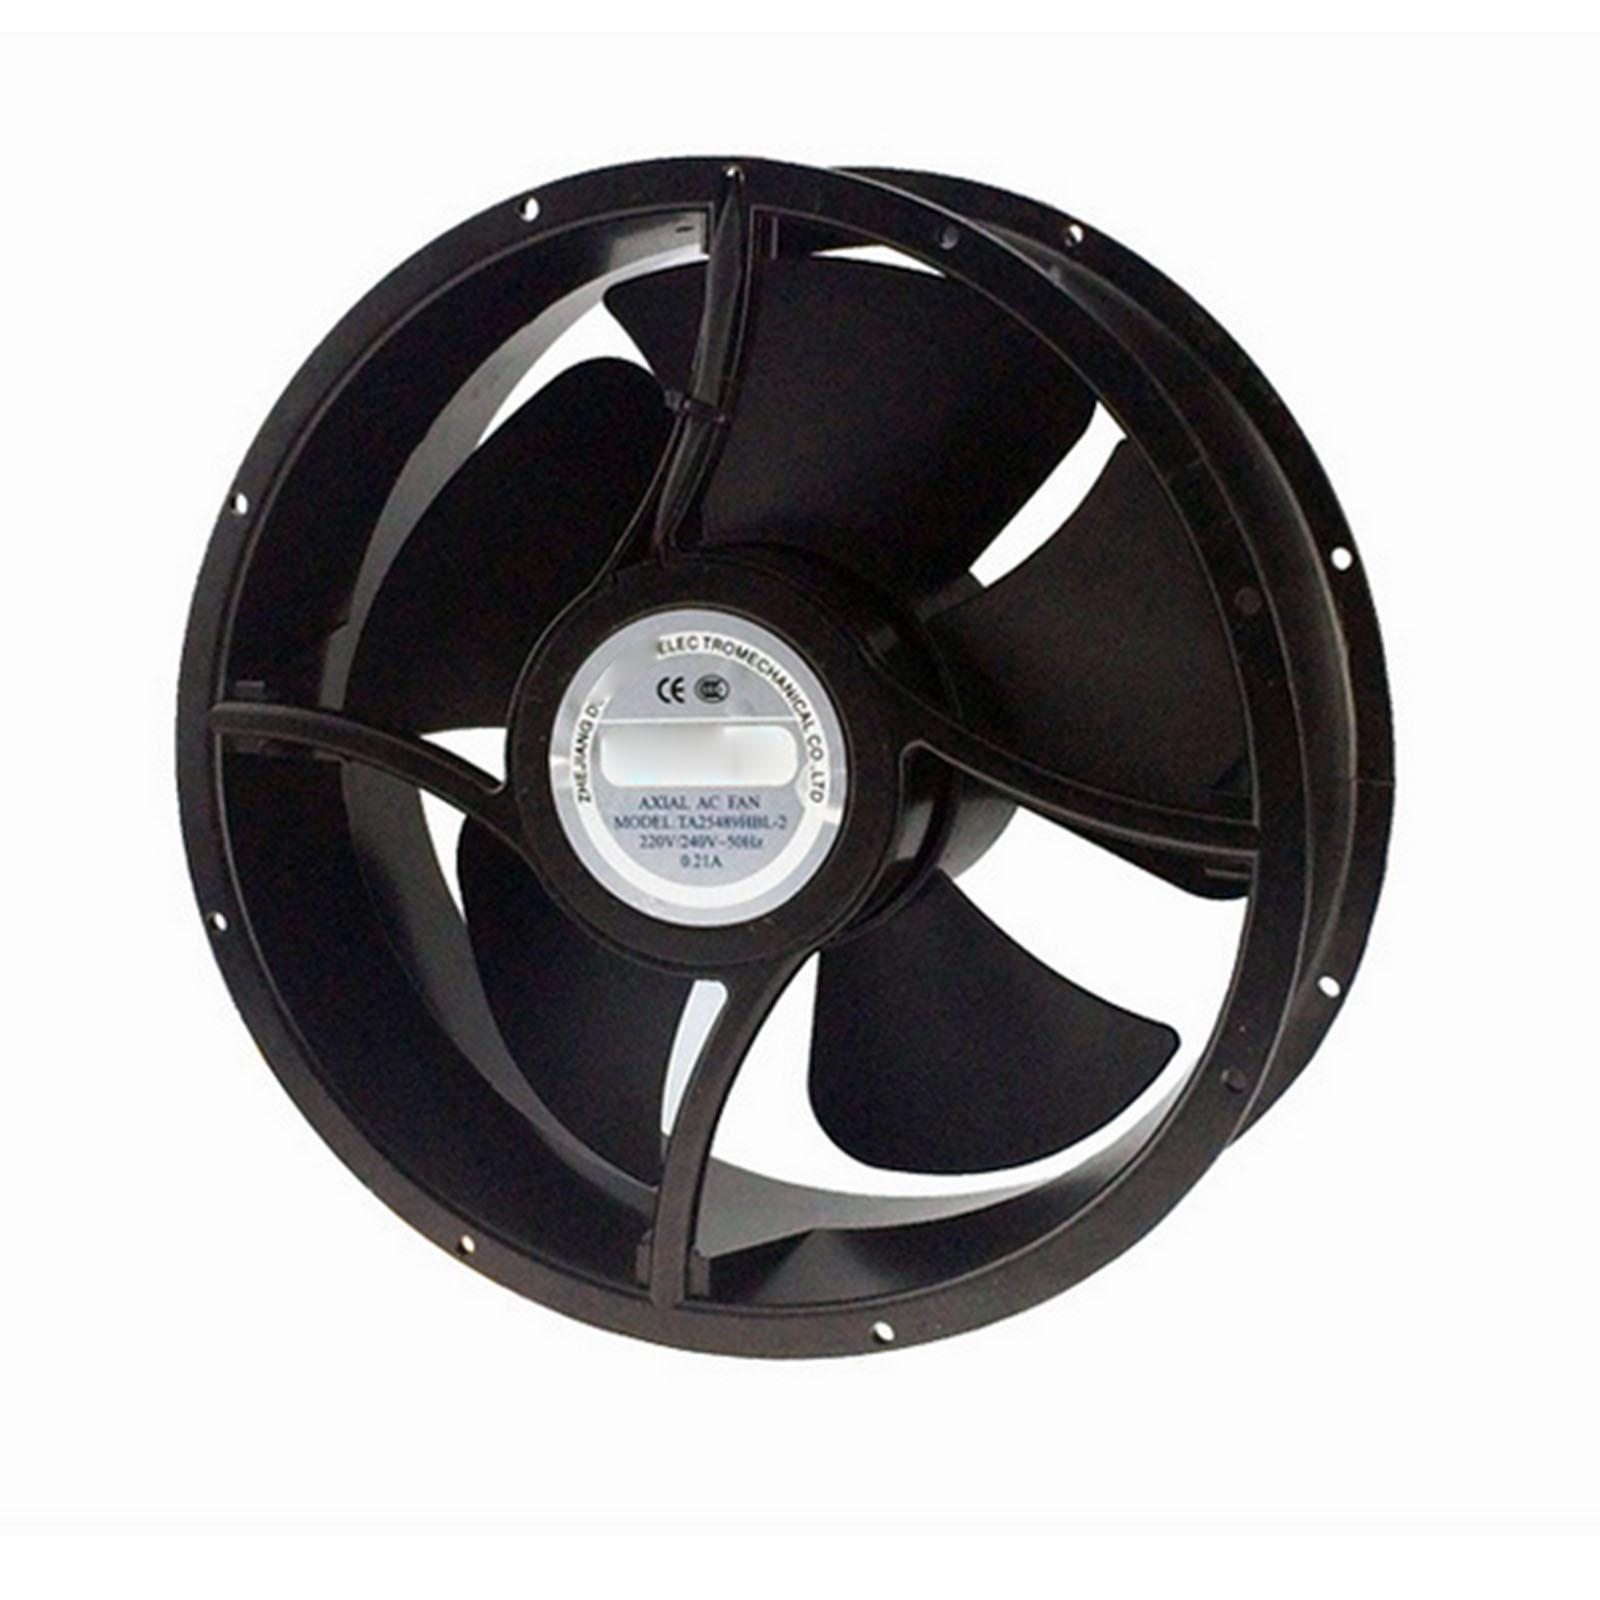 220V AC 254x89mm Round Axial Radiator Fan 860CFM 2600RPM Ball Bearing High Speed 220v ac 280x280x80mm axial radiator fan 1341cfm 2400rpm ball bearing high speed